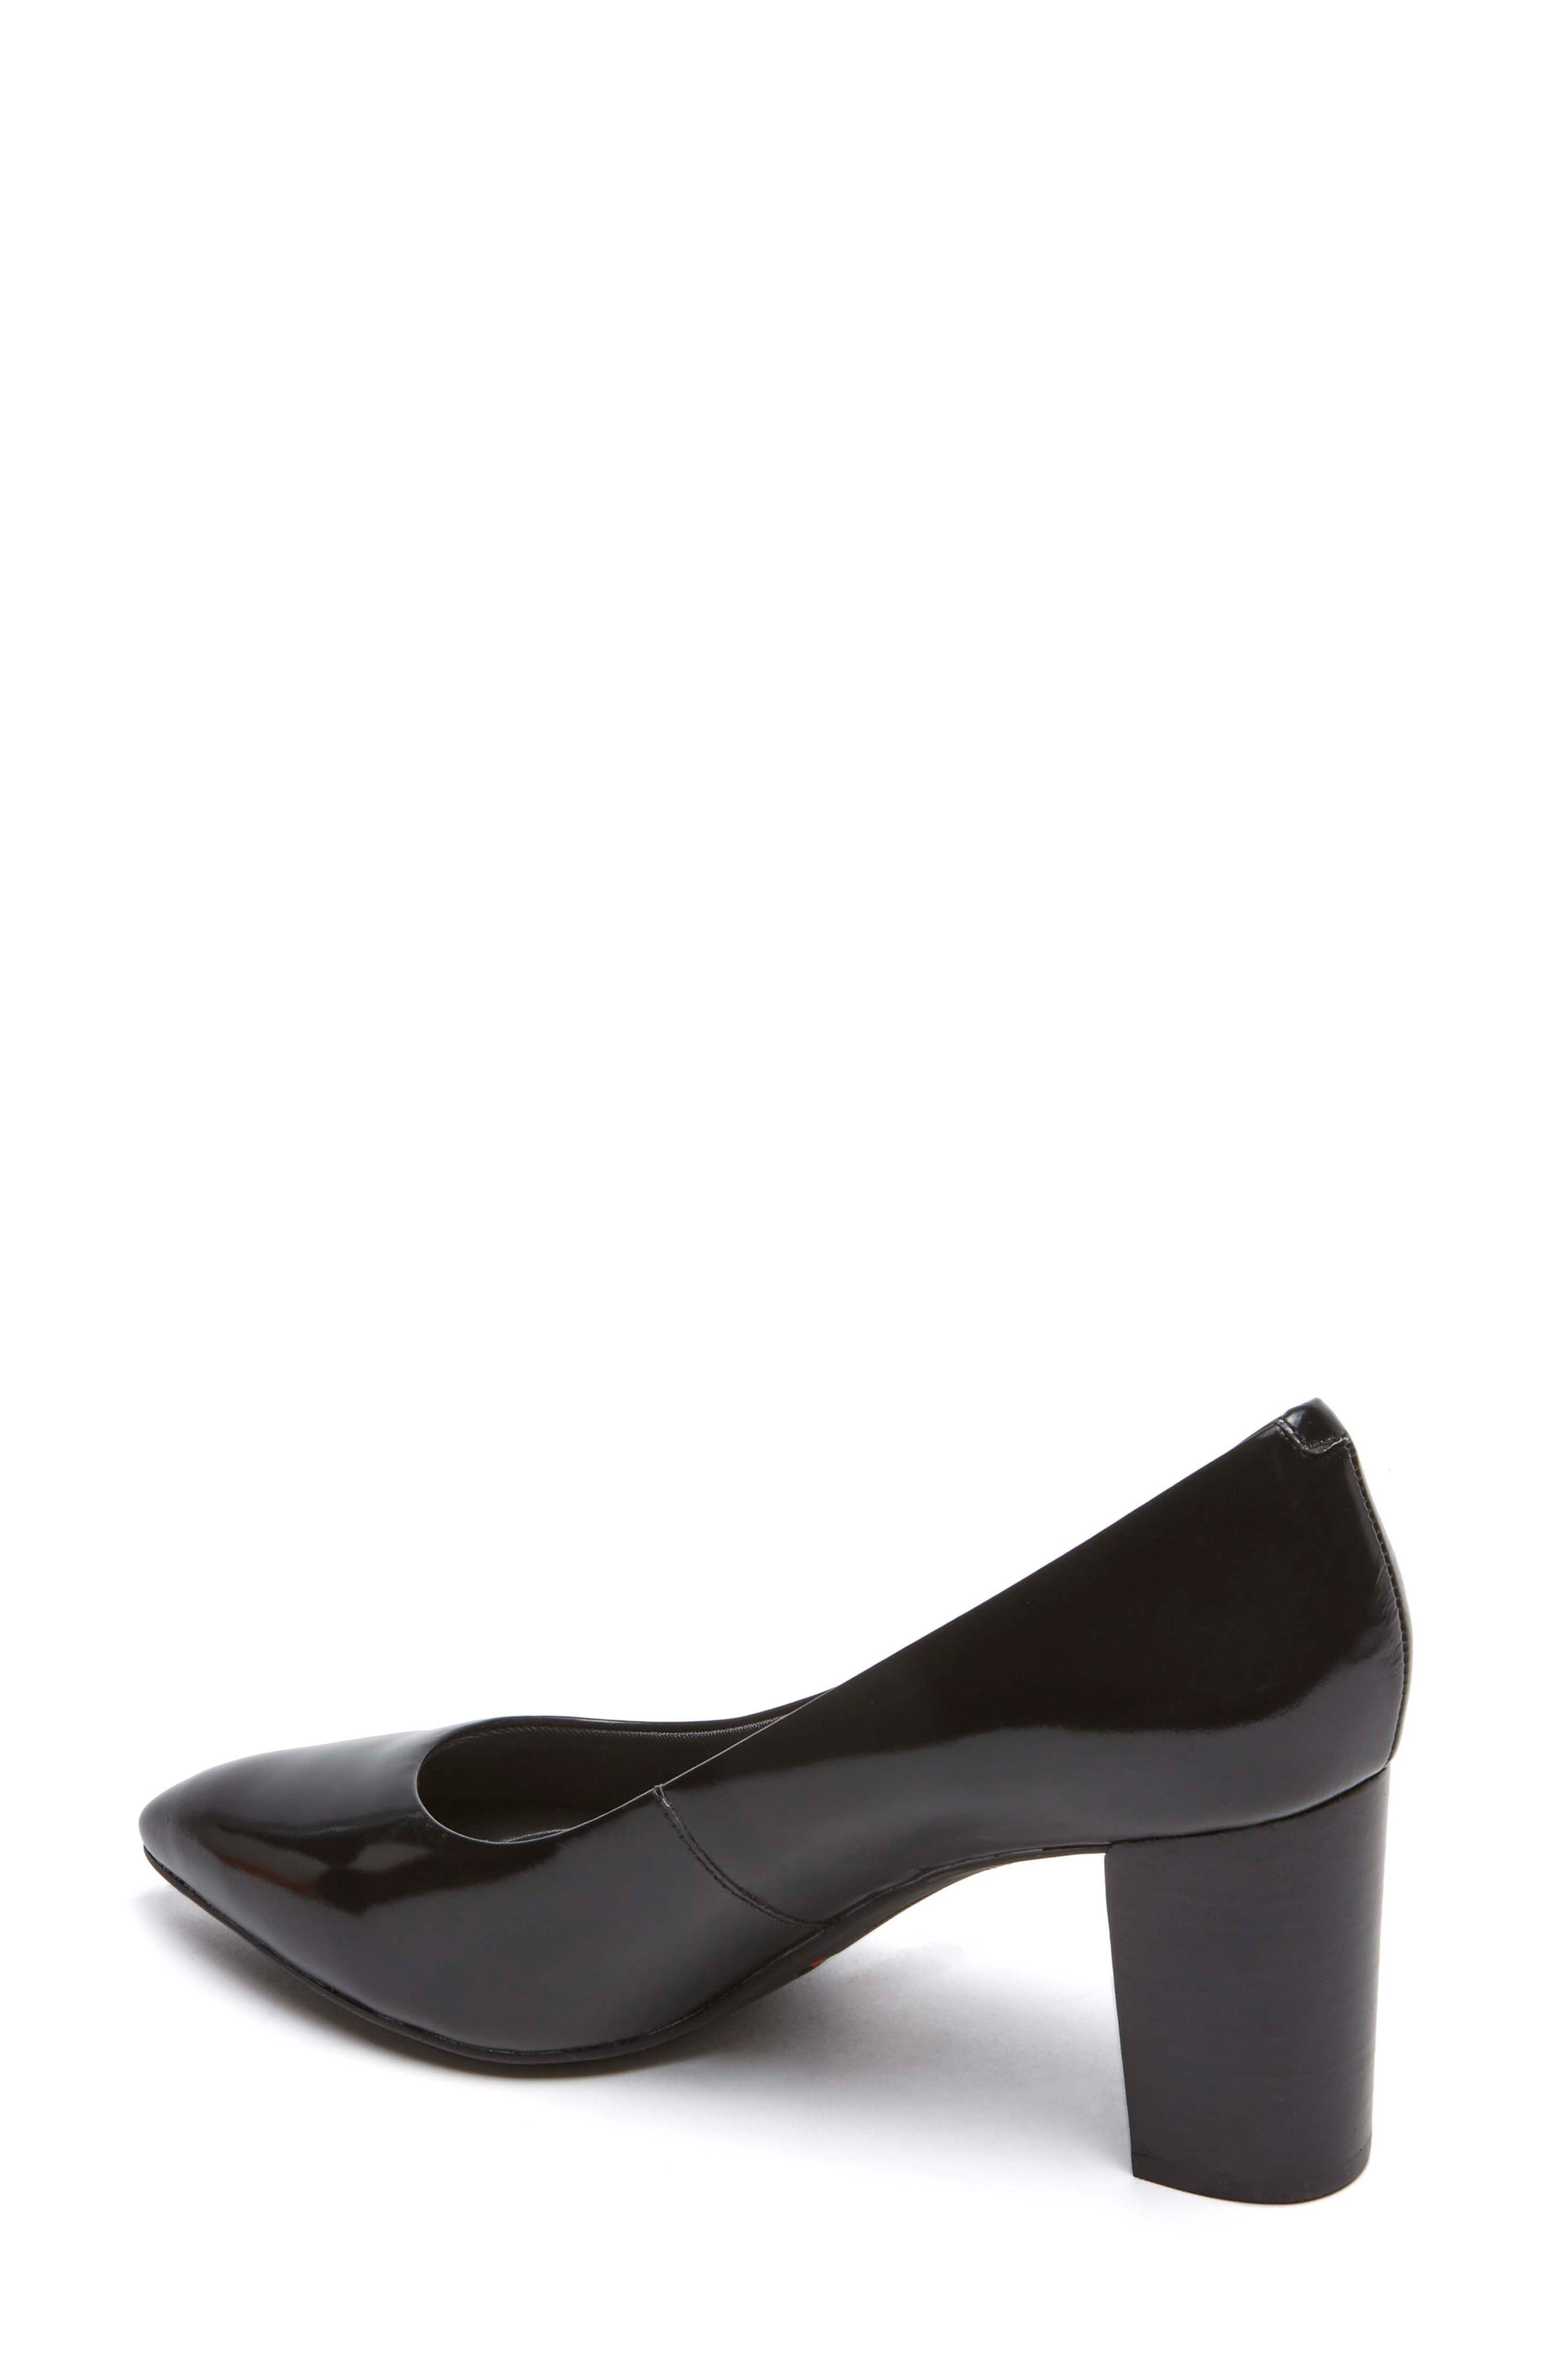 Total Motion Violina Luxe Pointy Toe Pump,                             Alternate thumbnail 2, color,                             BLACK PATENT LEATHER